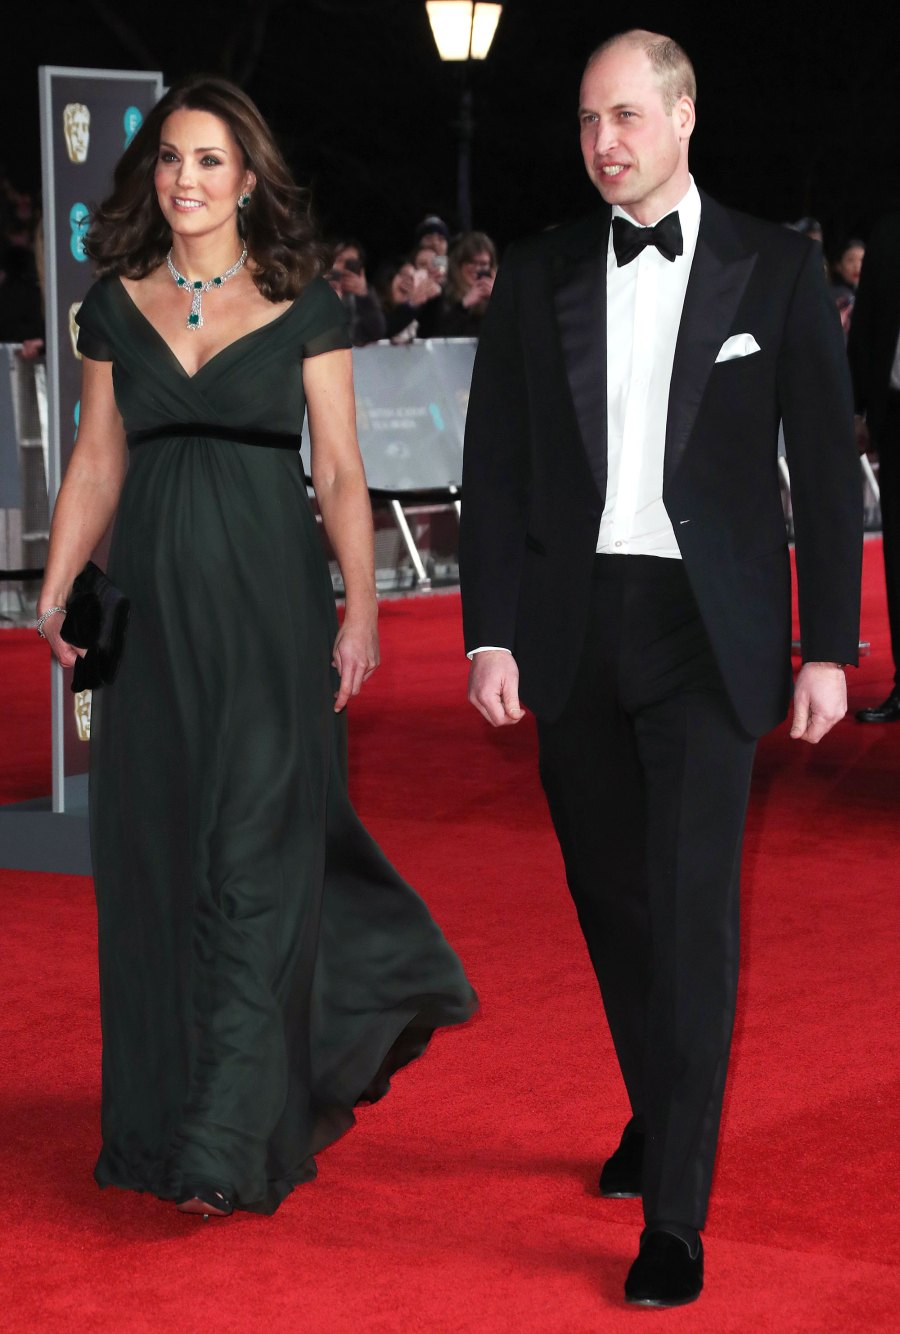 Duchess Kate and Prince William BAFTA Awards Red Carpet Appearances - 2018